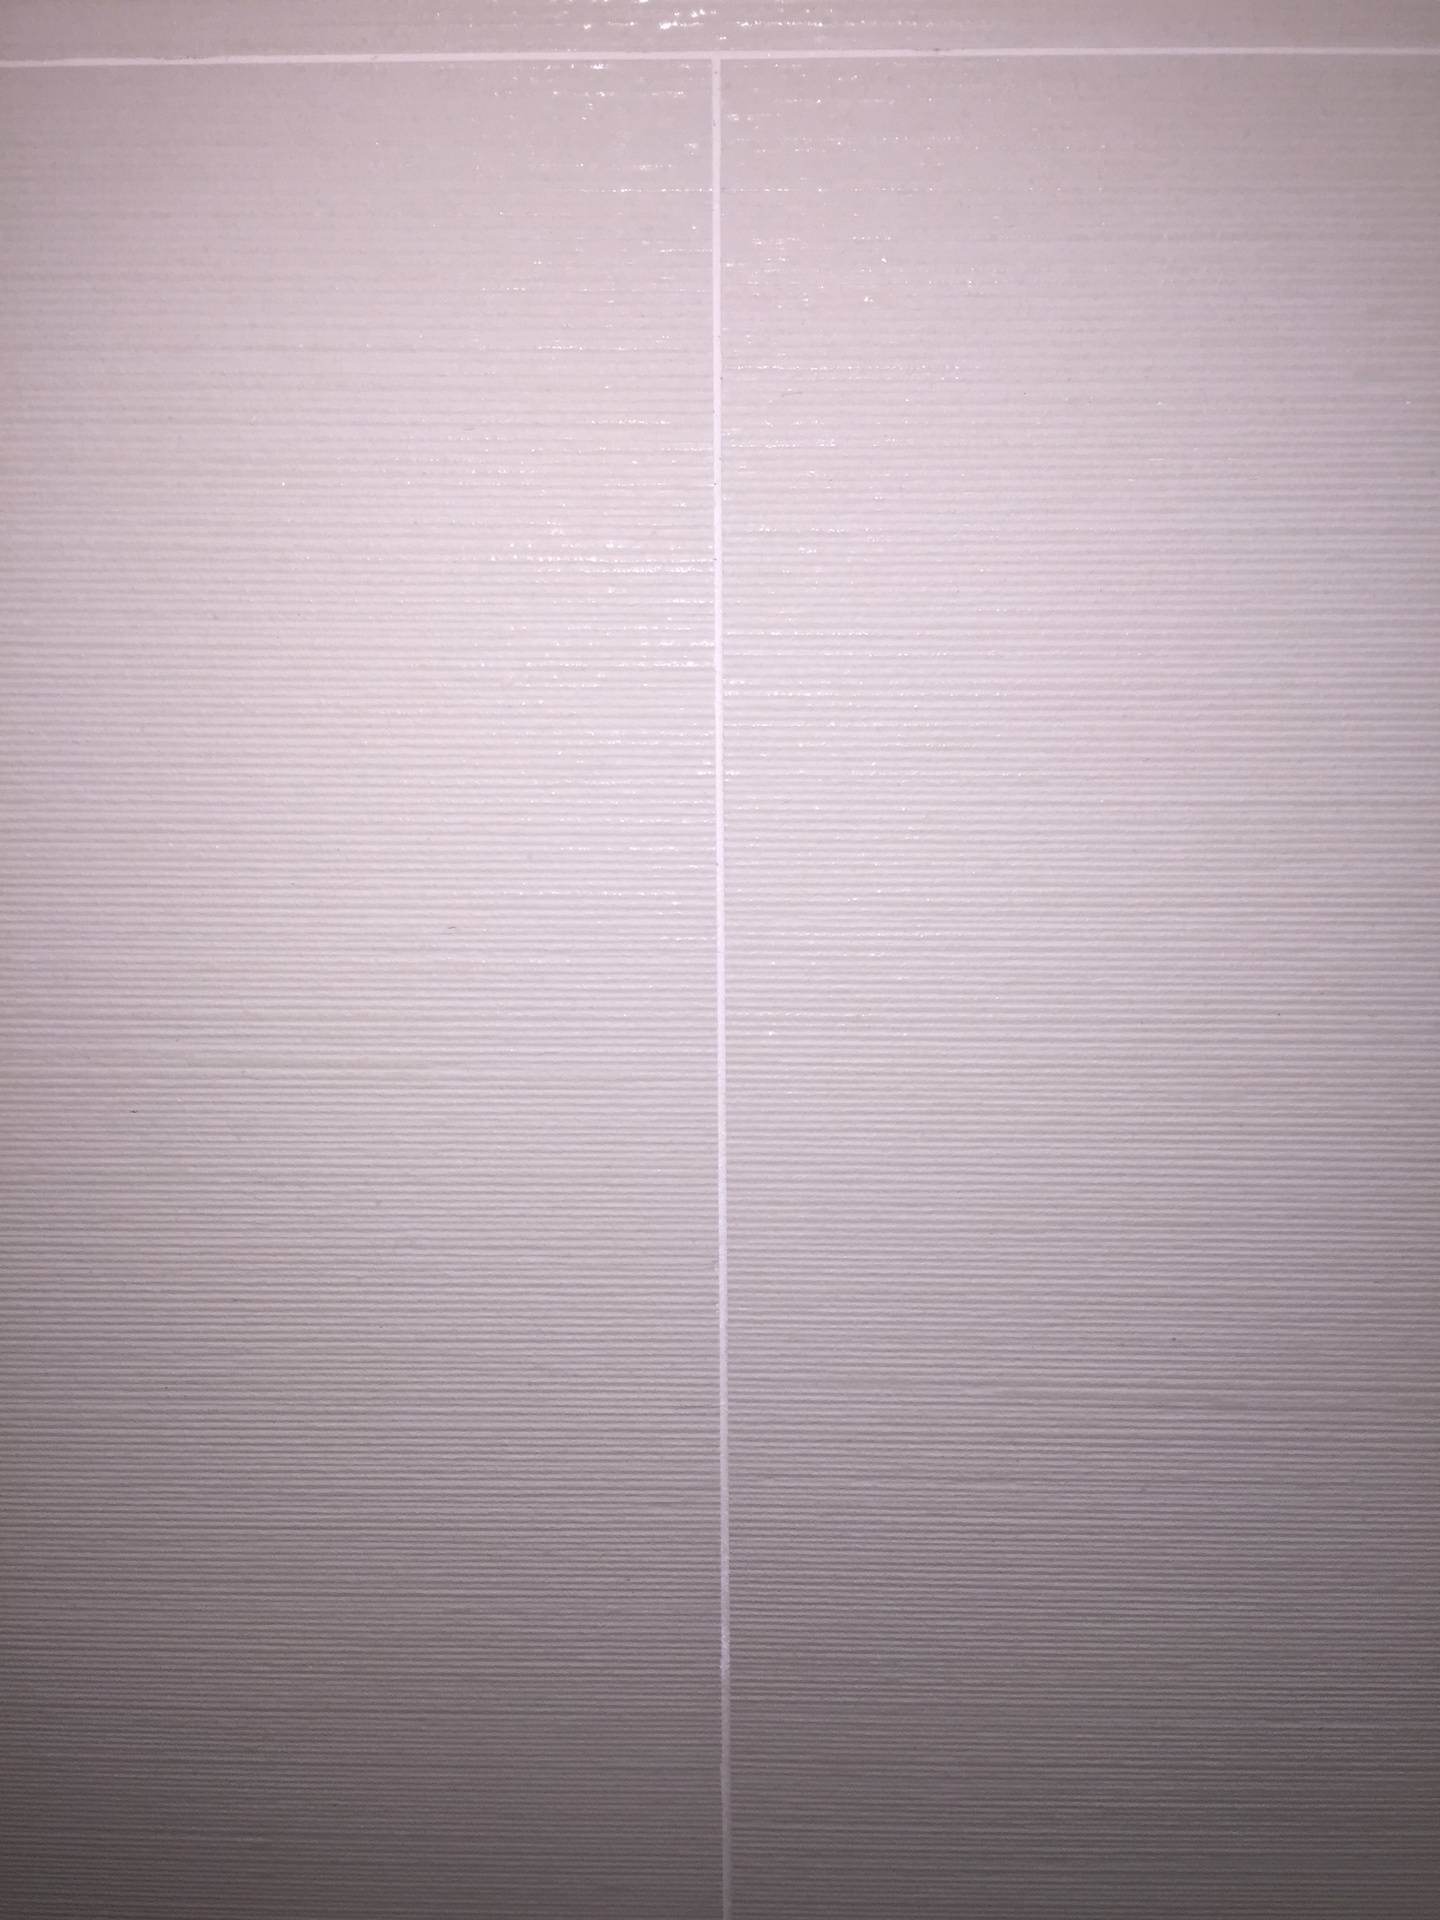 Super Thin Grout Lines